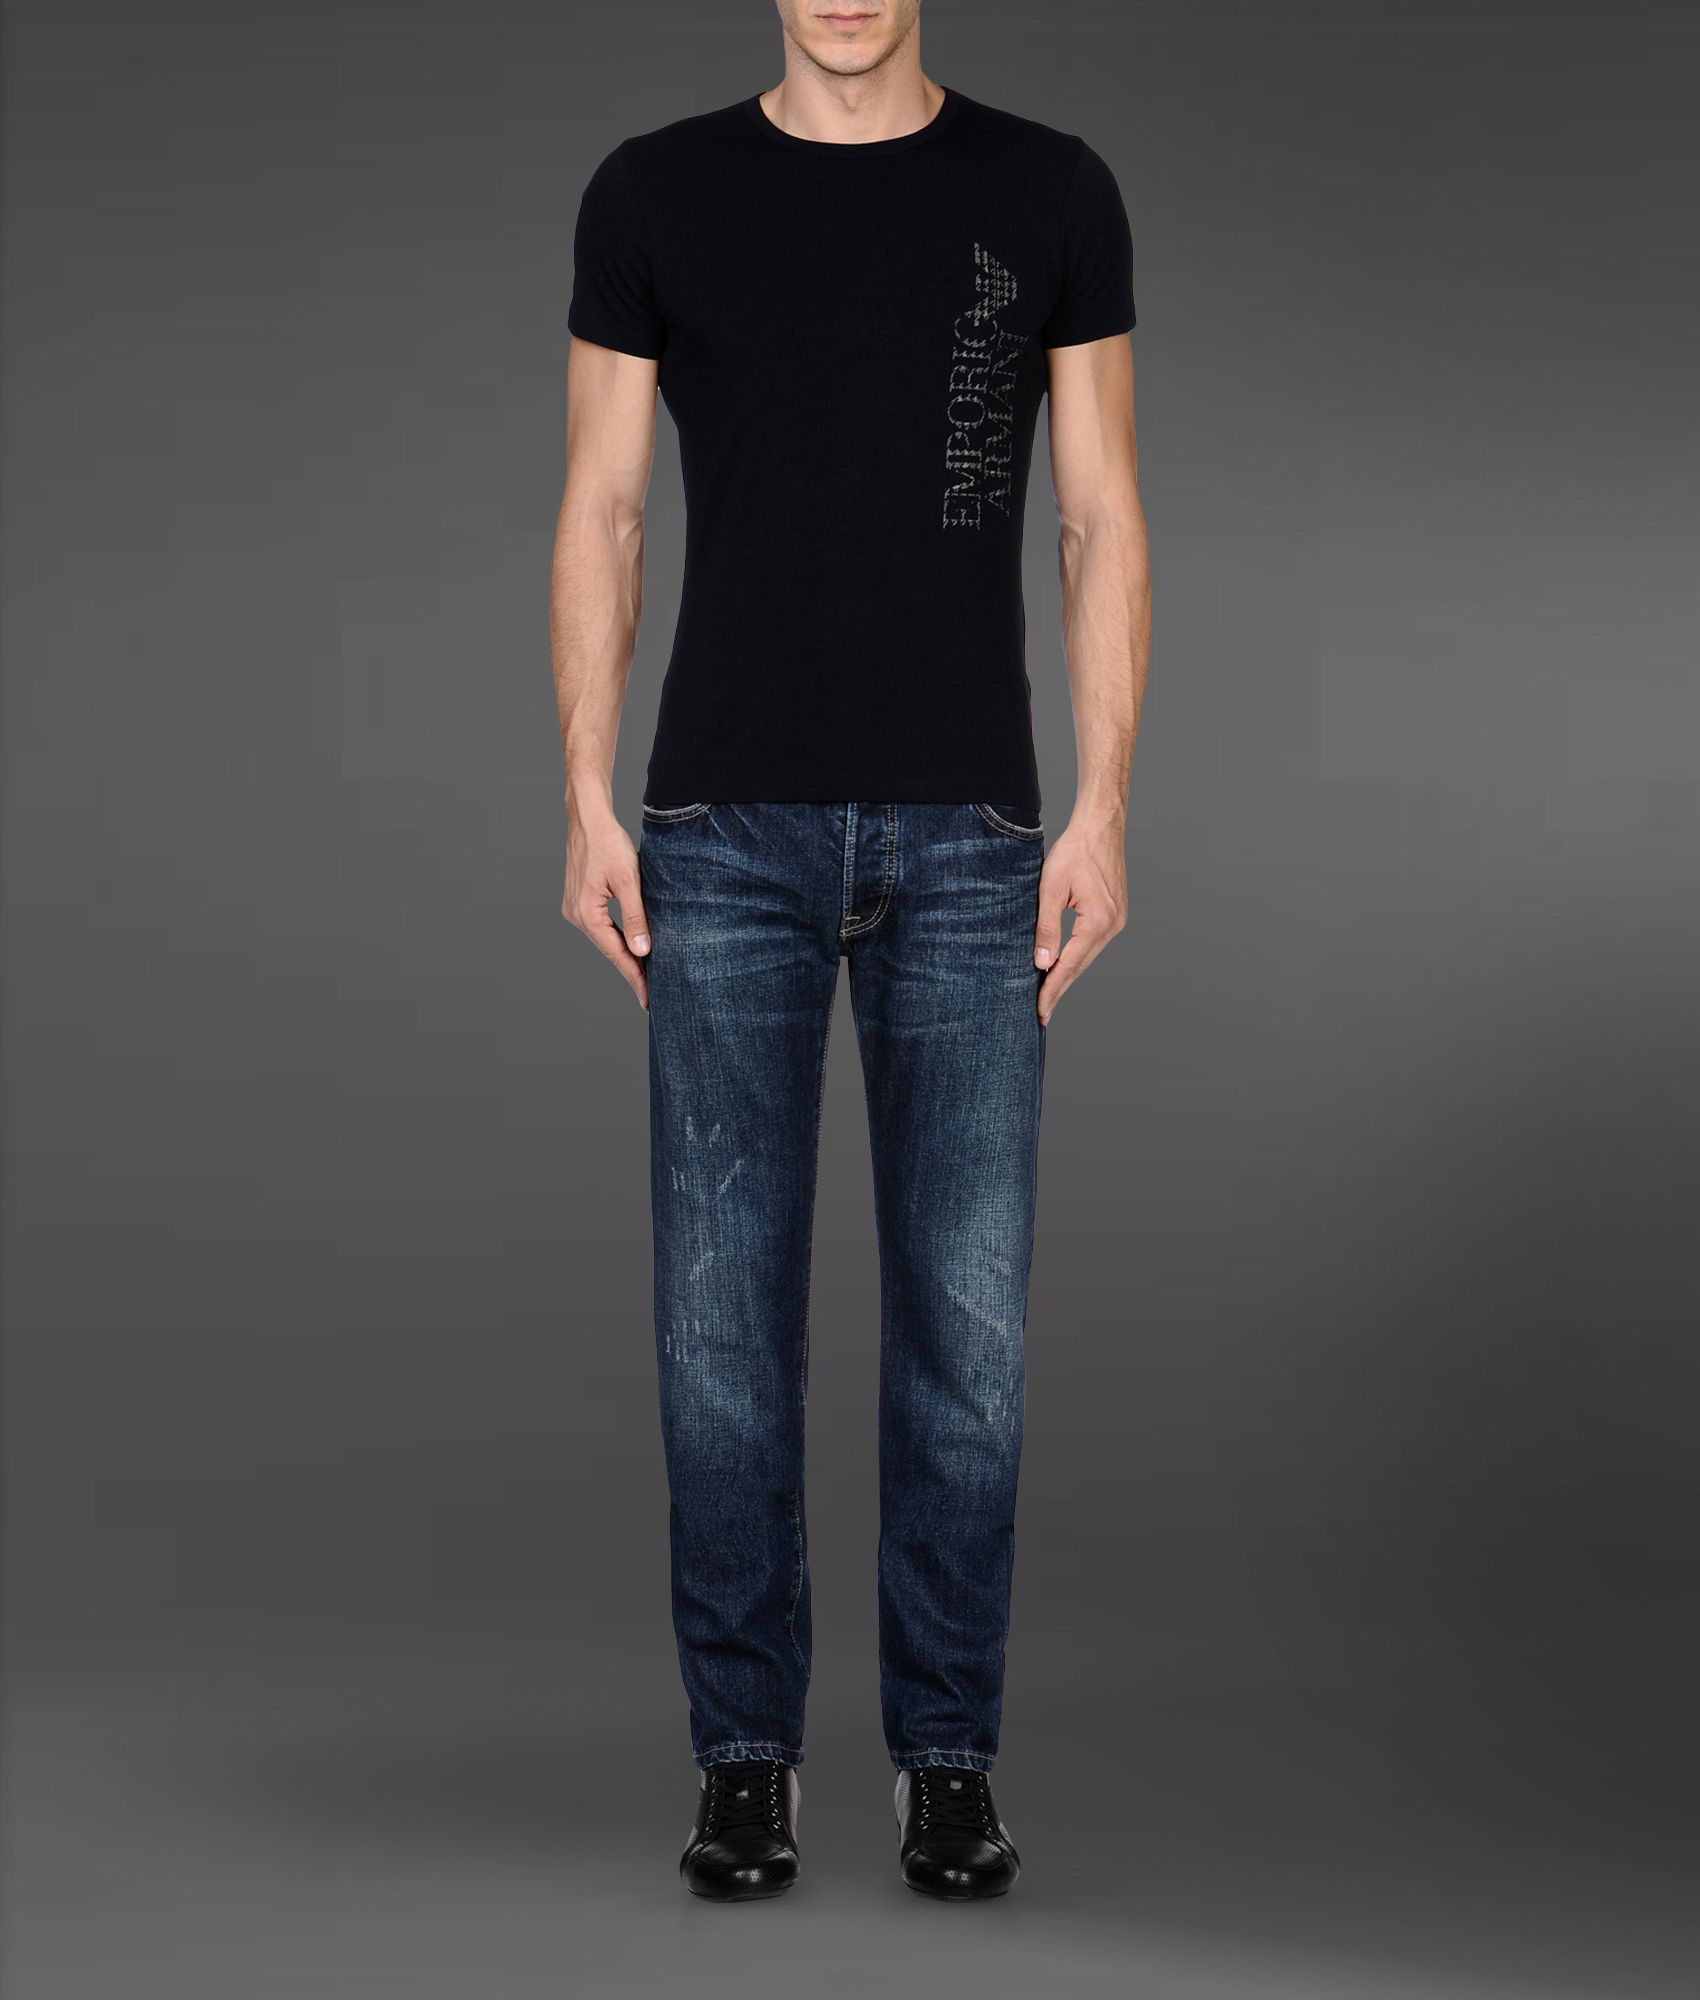 Armani Clothing For Men